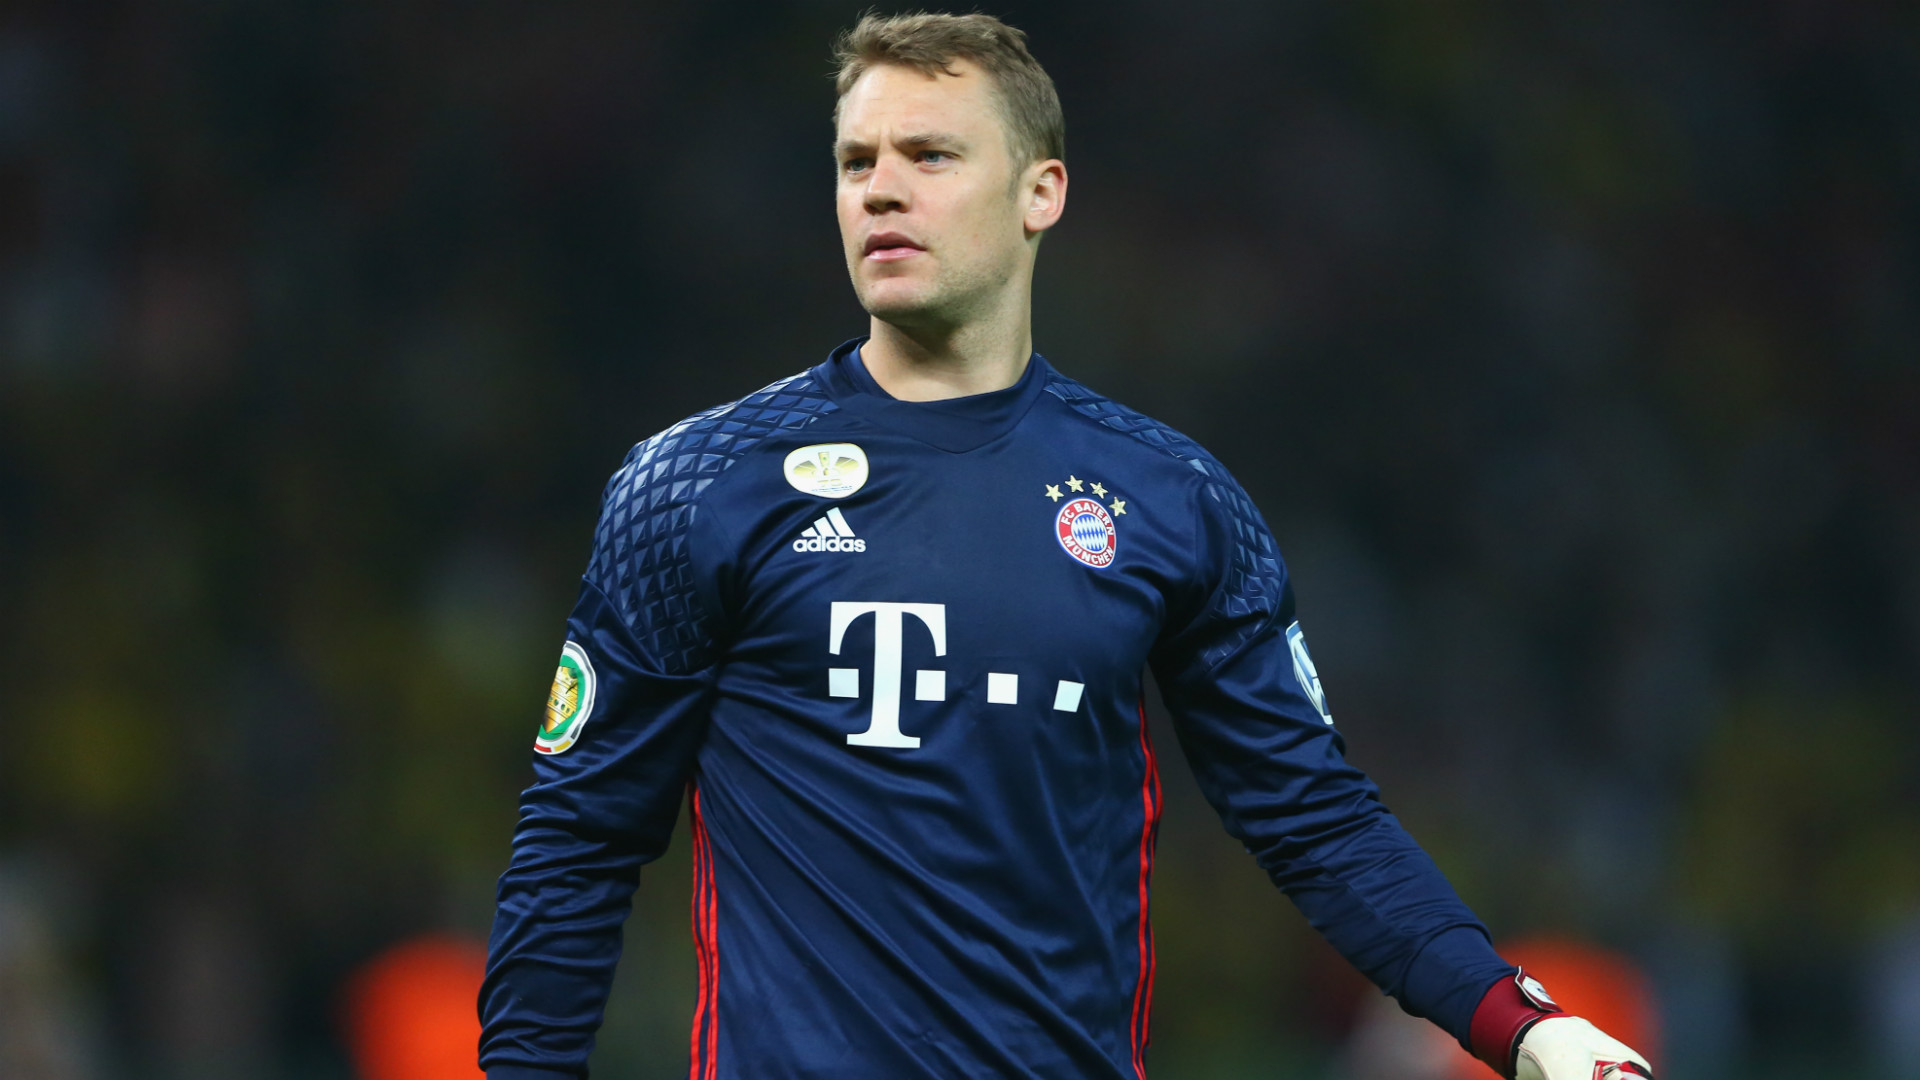 Soccer Quotes Iphone Wallpapers Manuel Neuer Wallpapers Hd